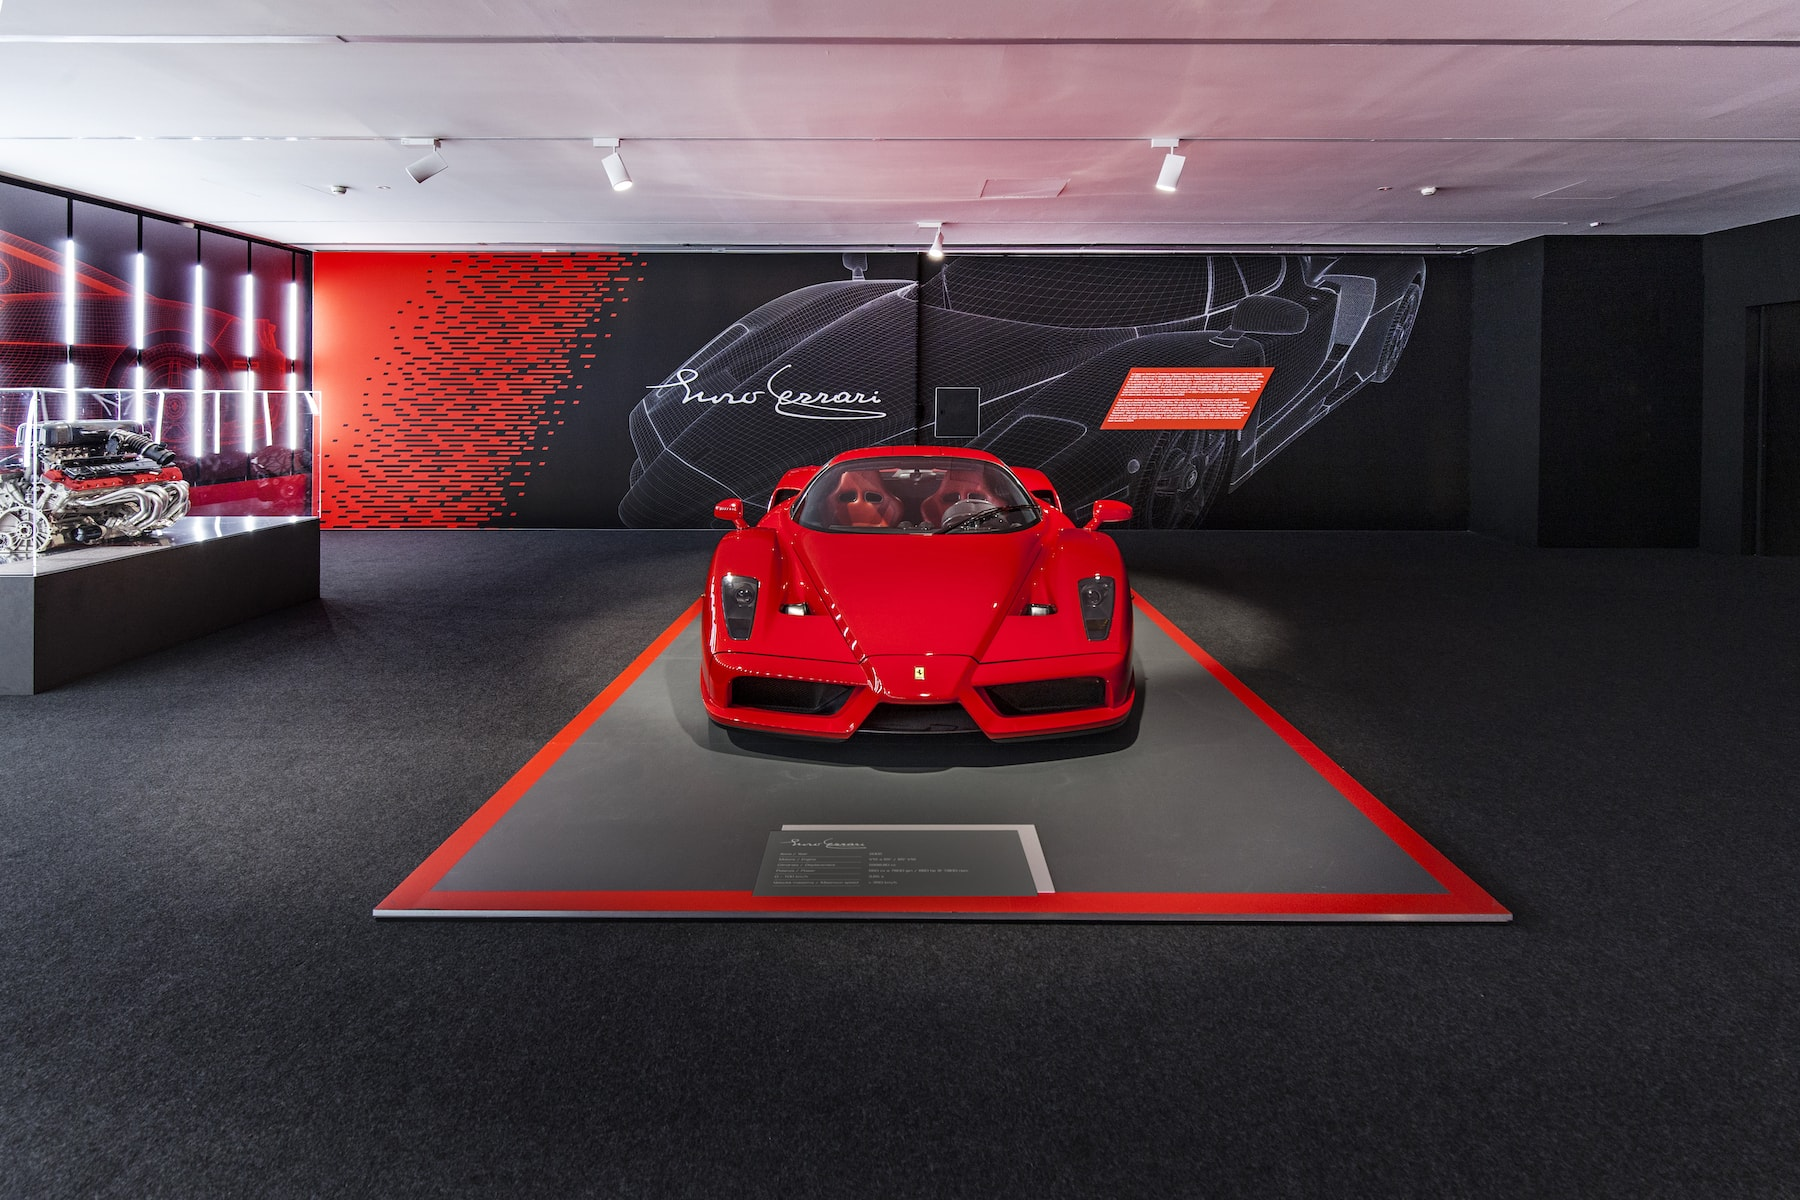 2019 Museo Ferrari 90 years exhibition 13.jpg